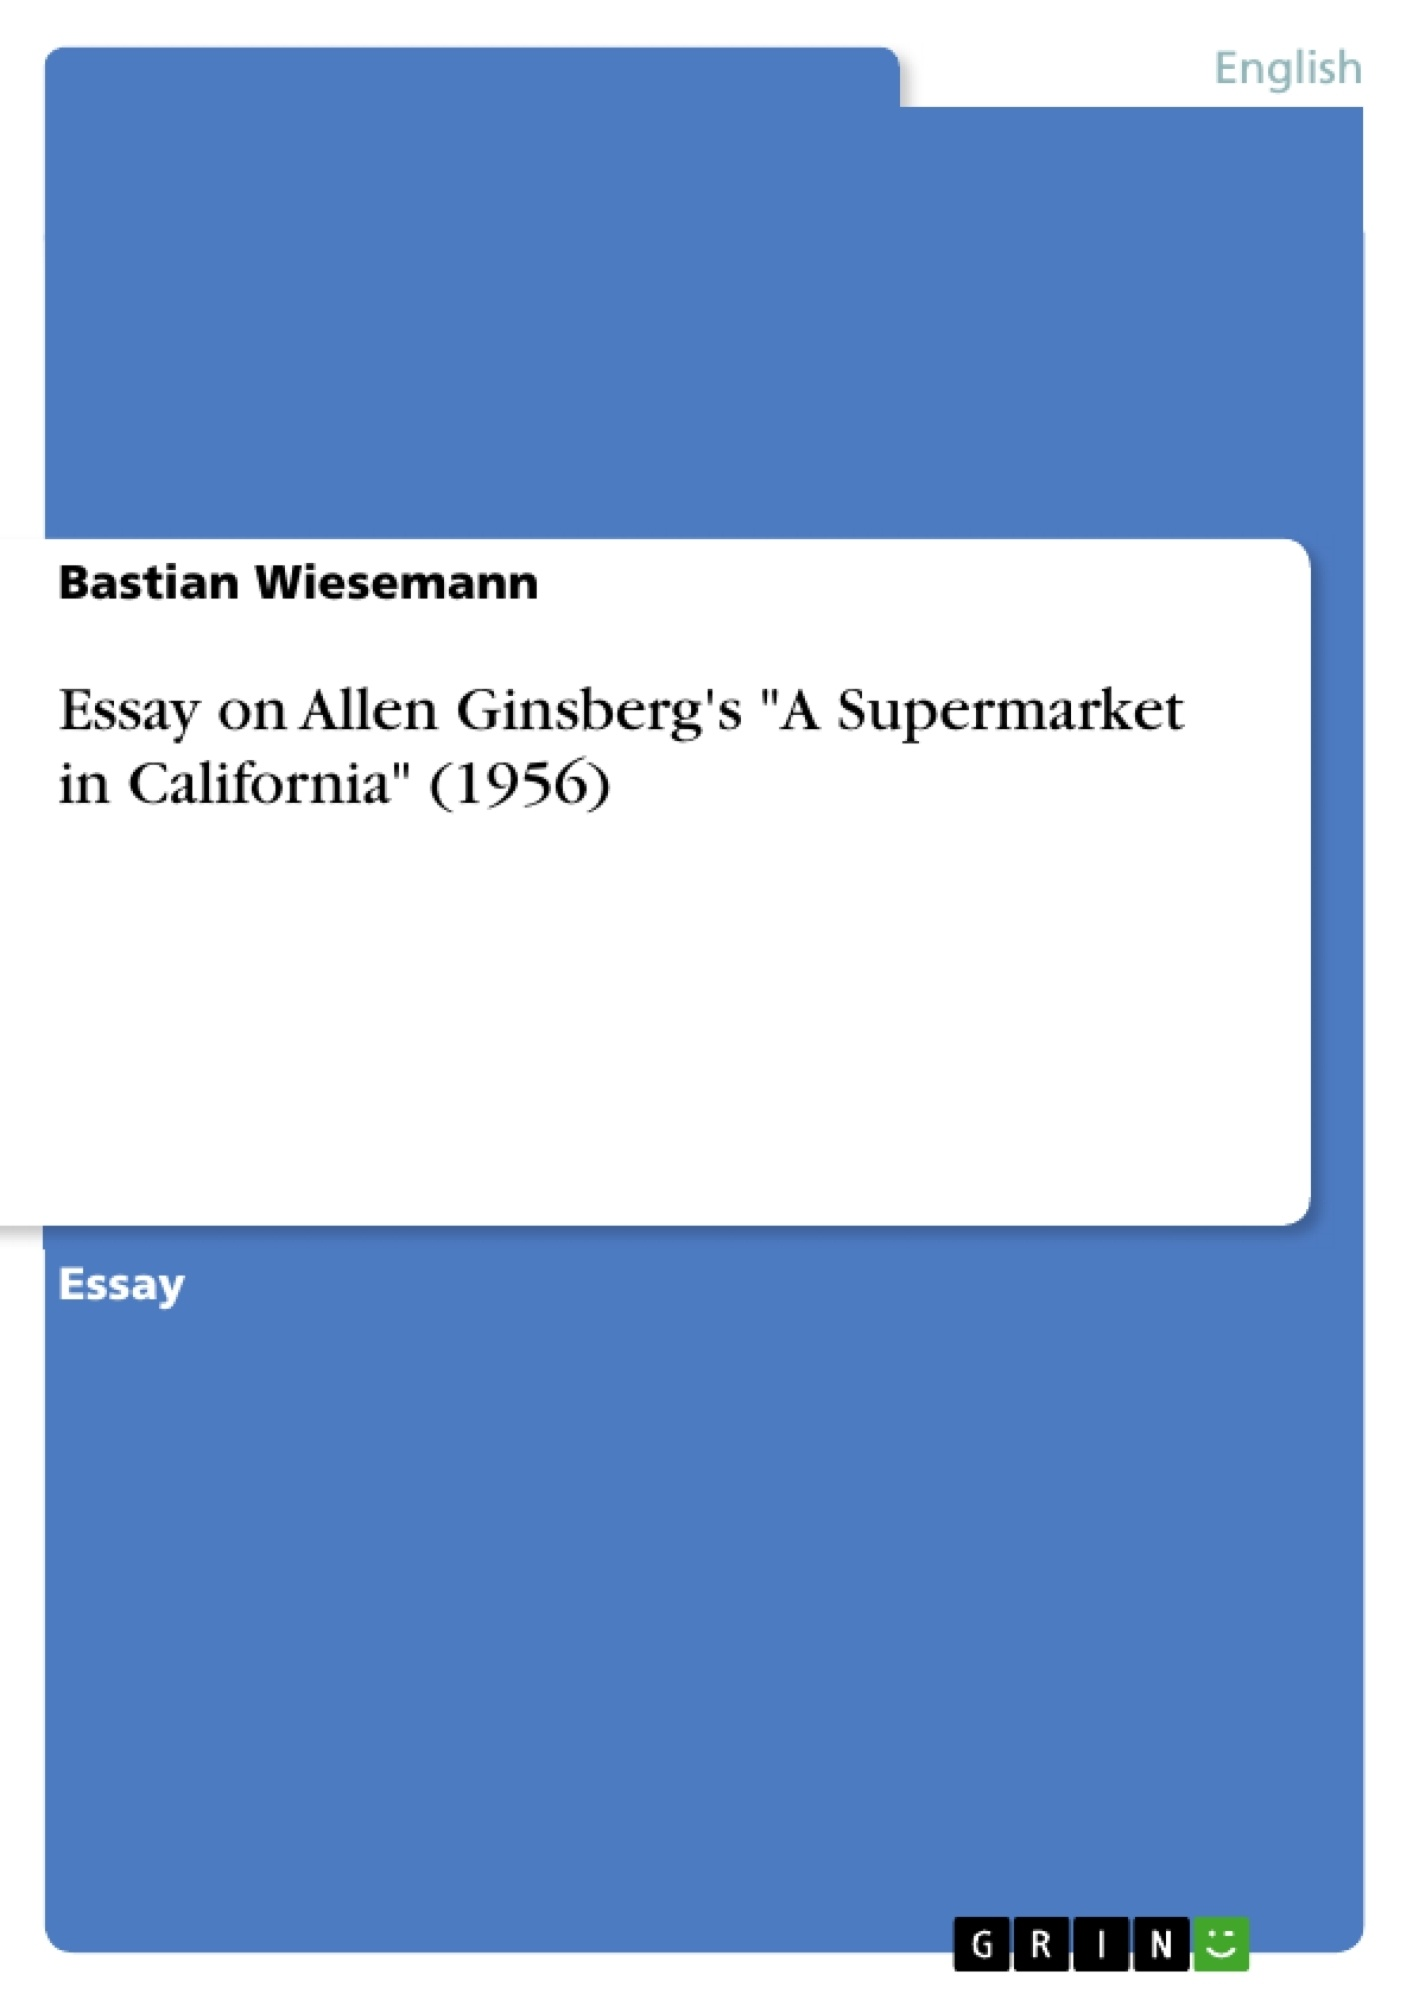 essay on allen ginsberg s a supermarket in california  upload your own papers earn money and win an iphone x